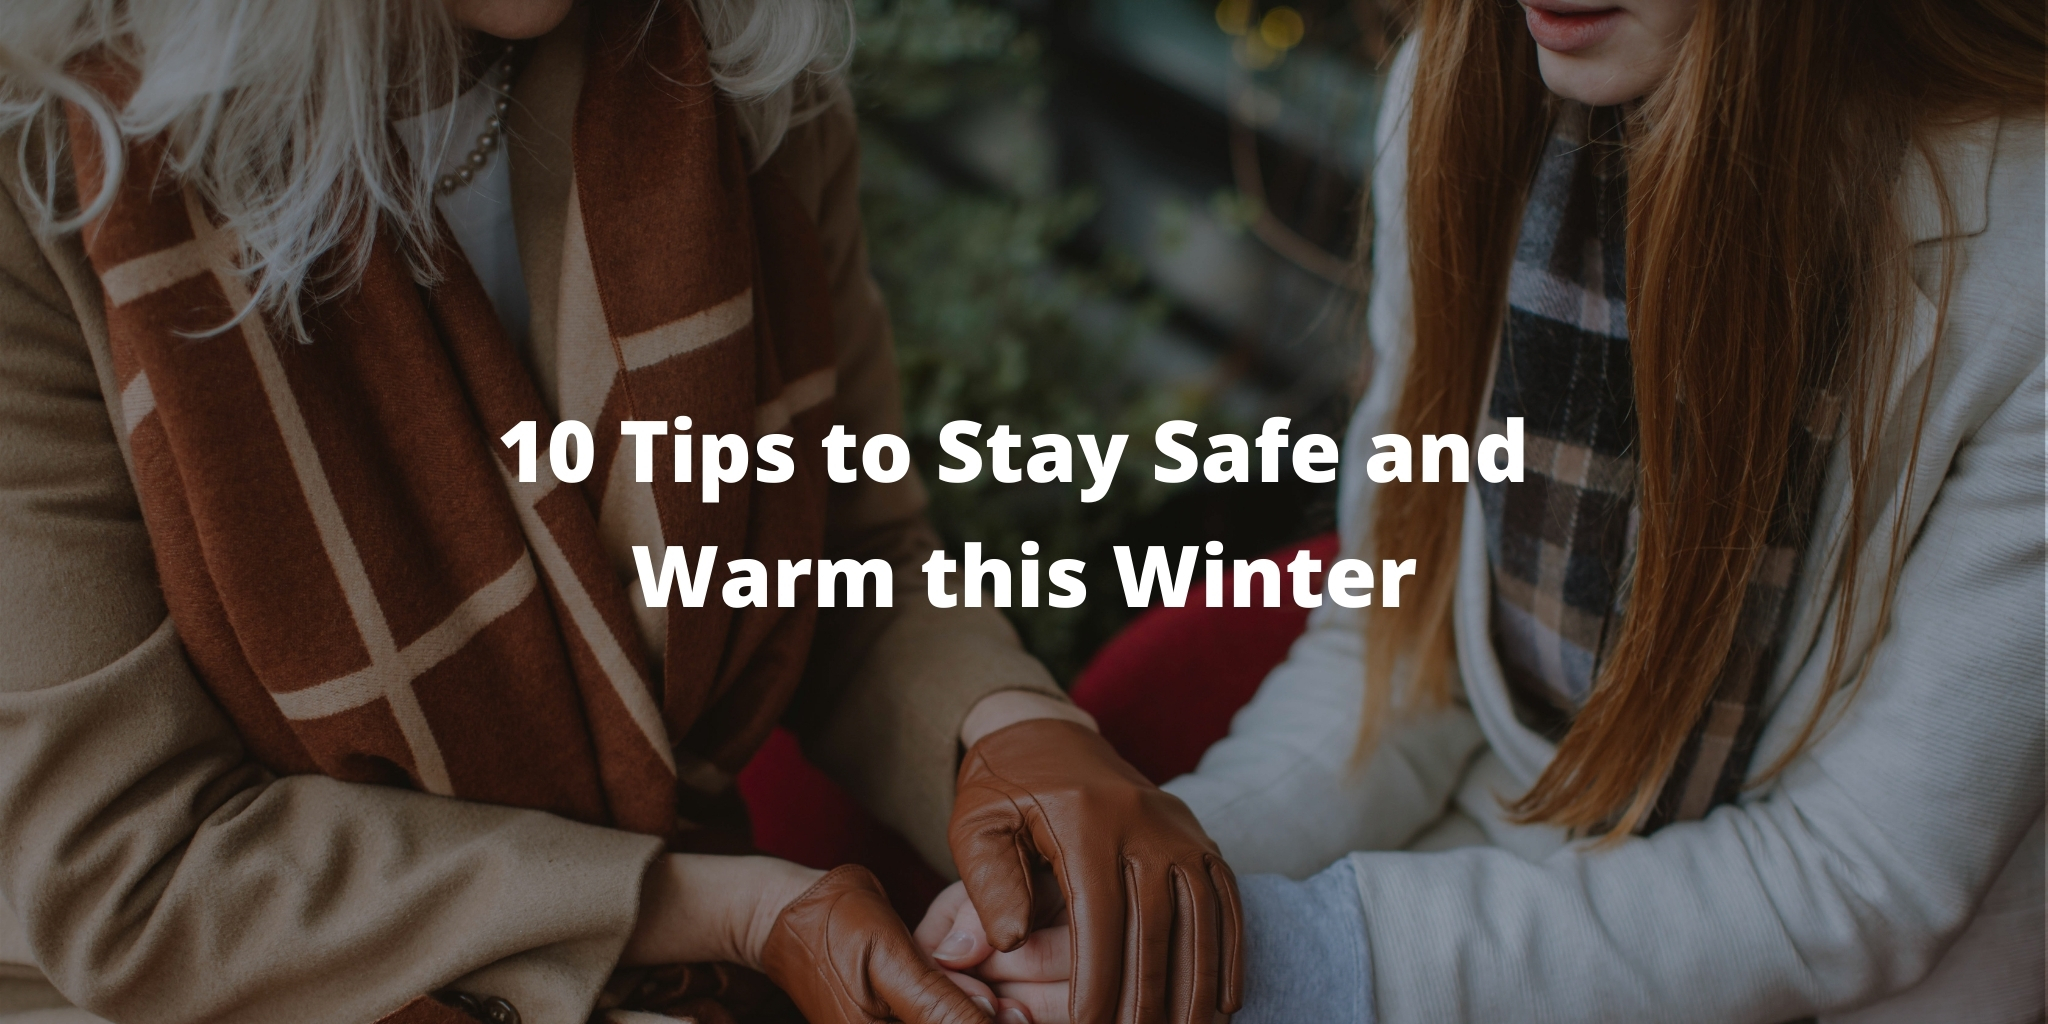 10 Tips to Stay Safe and Warm this Winter